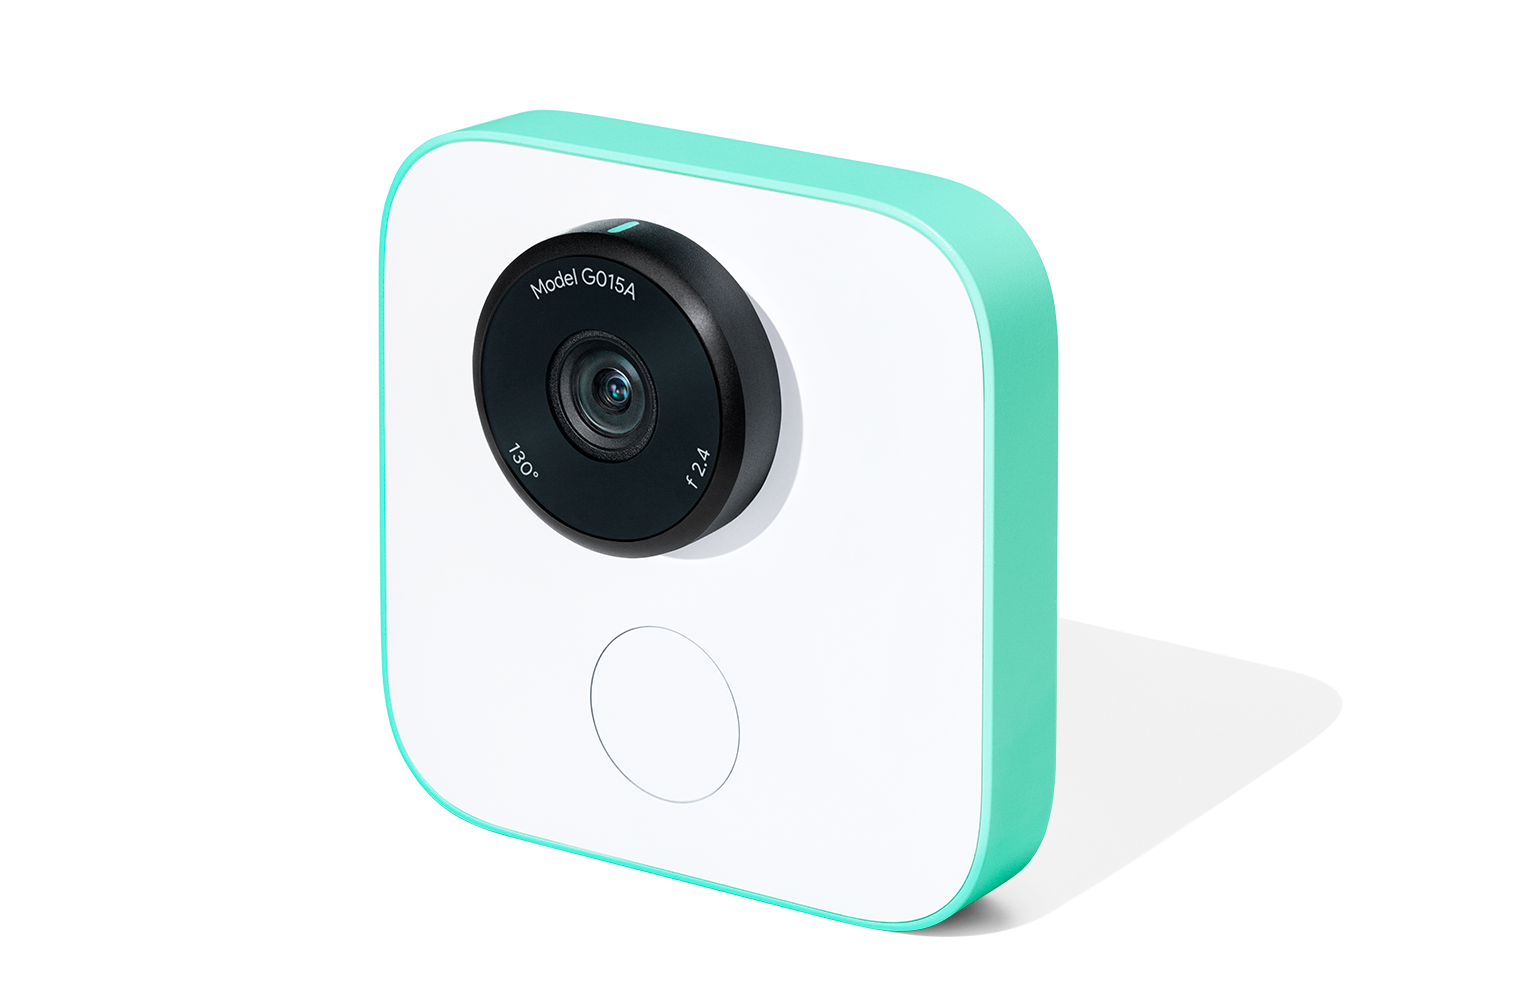 Clip camera smart. The google clips is